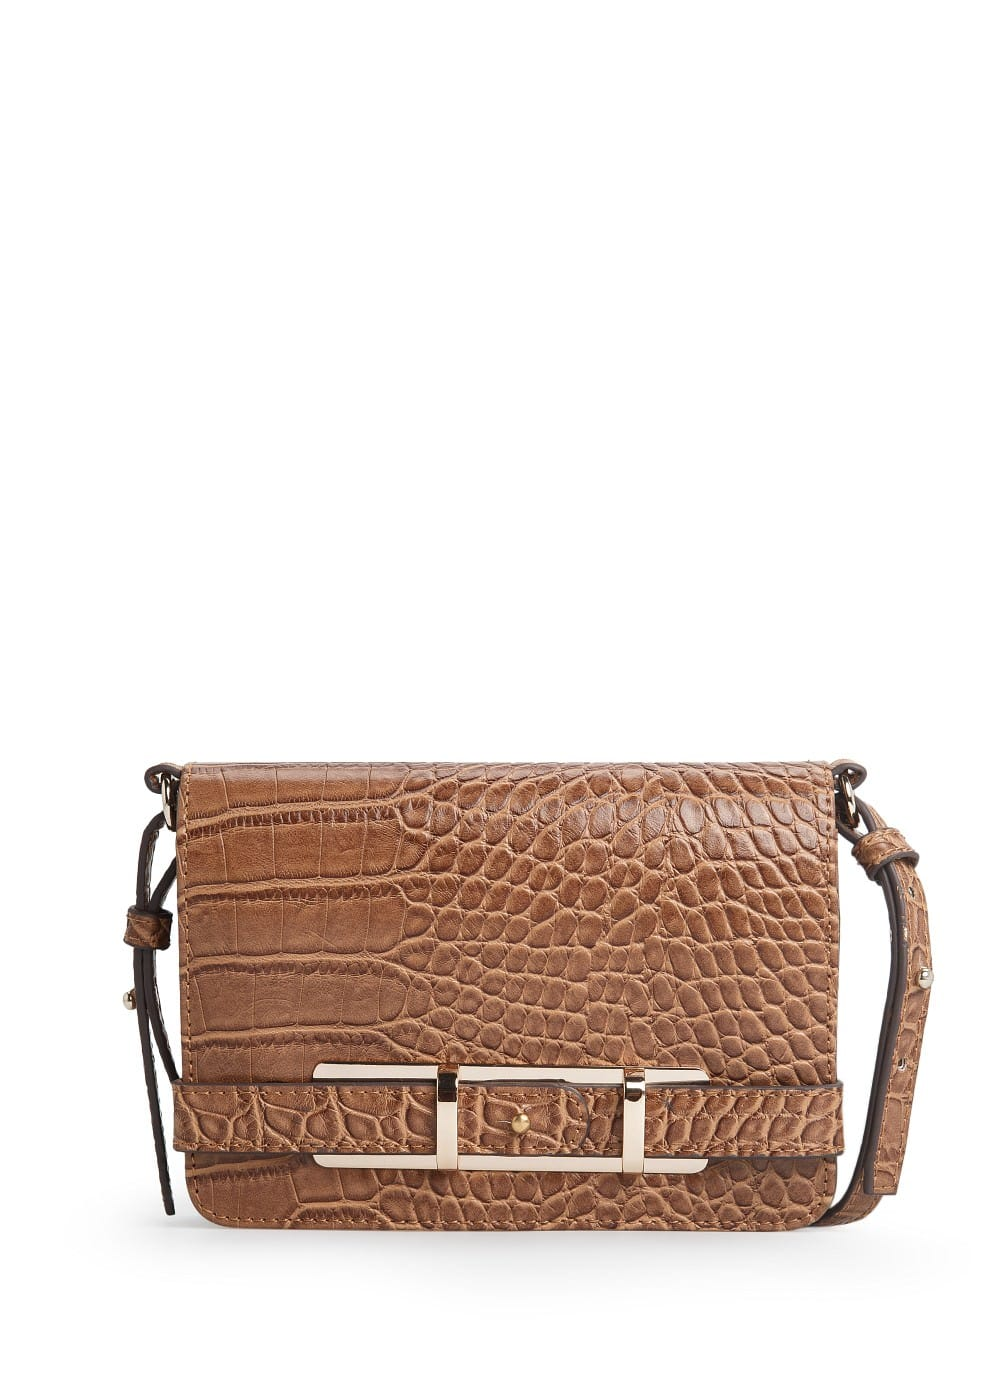 Croc-effect cross body bag